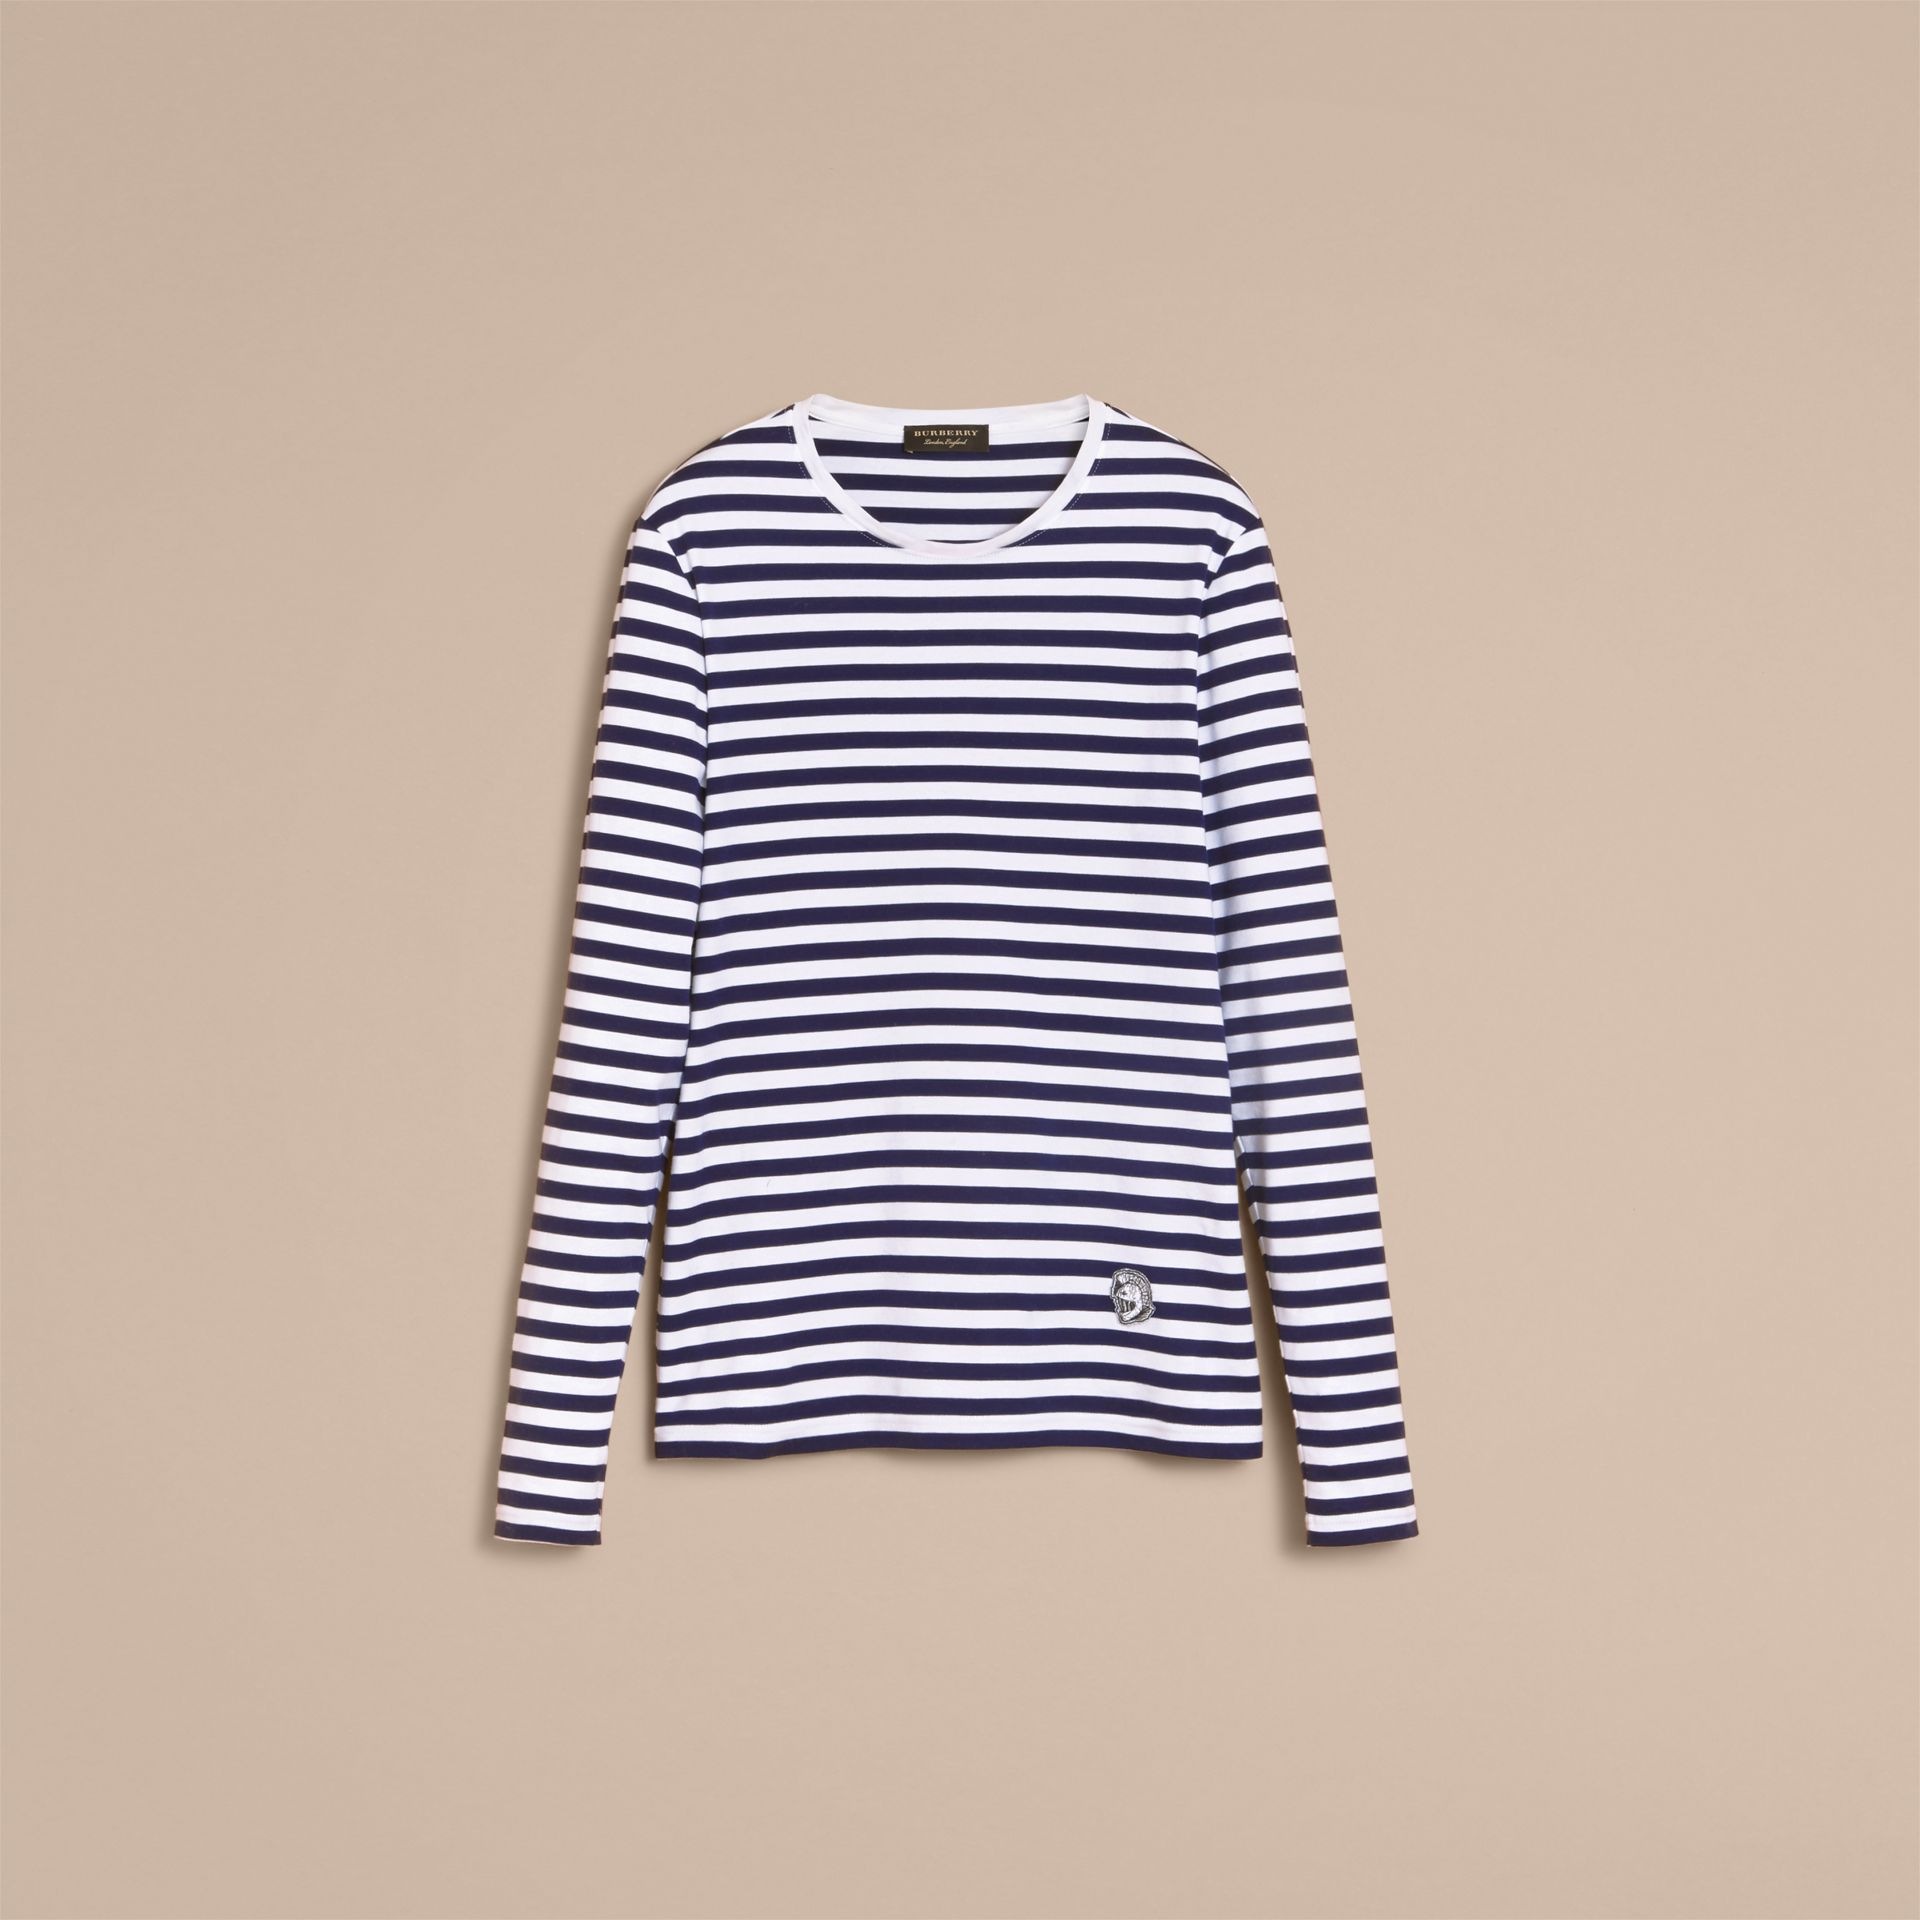 Unisex Pallas Helmet Motif Breton Stripe Cotton Top in Indigo - Men | Burberry - gallery image 4